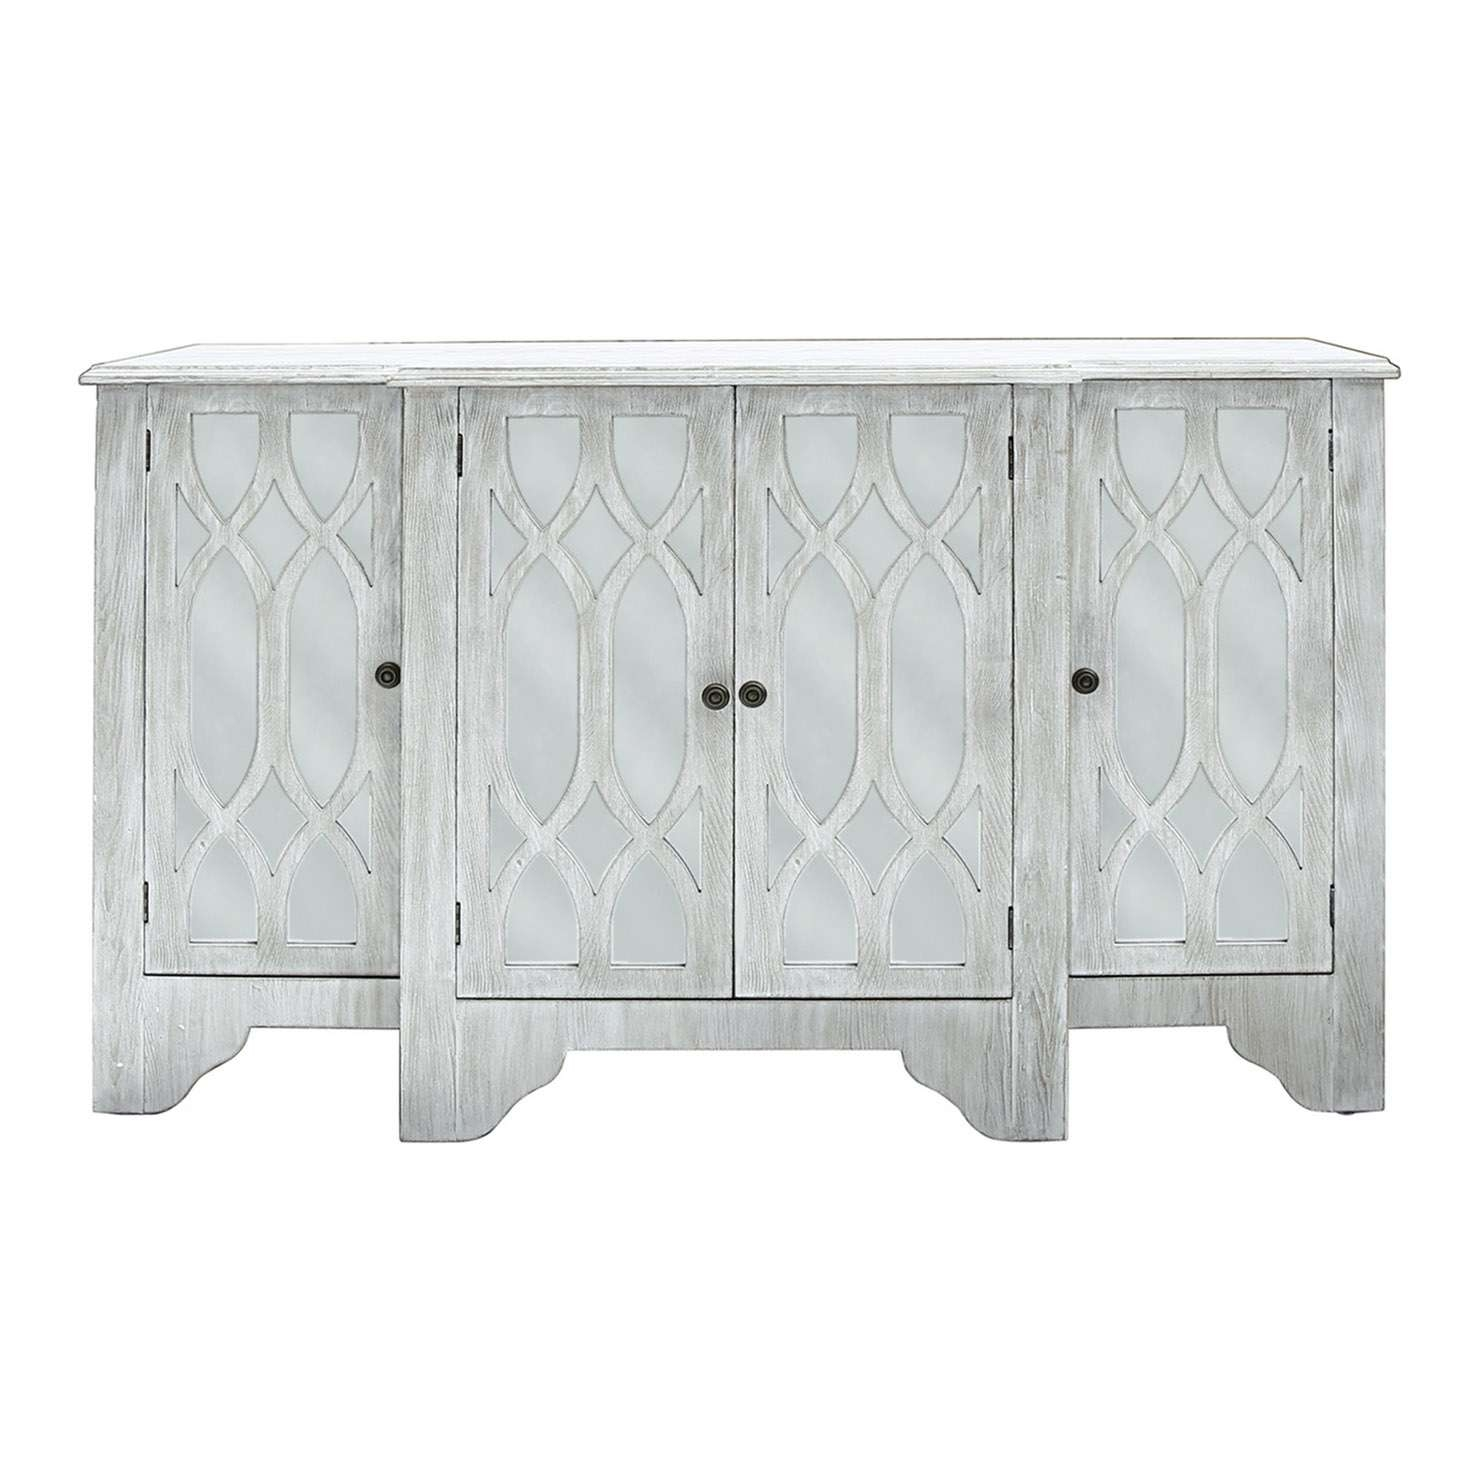 Oslo Mirrored 4 Door Sideboard, Washed Ash | Achica In White Mirrored Sideboards (Gallery 15 of 20)